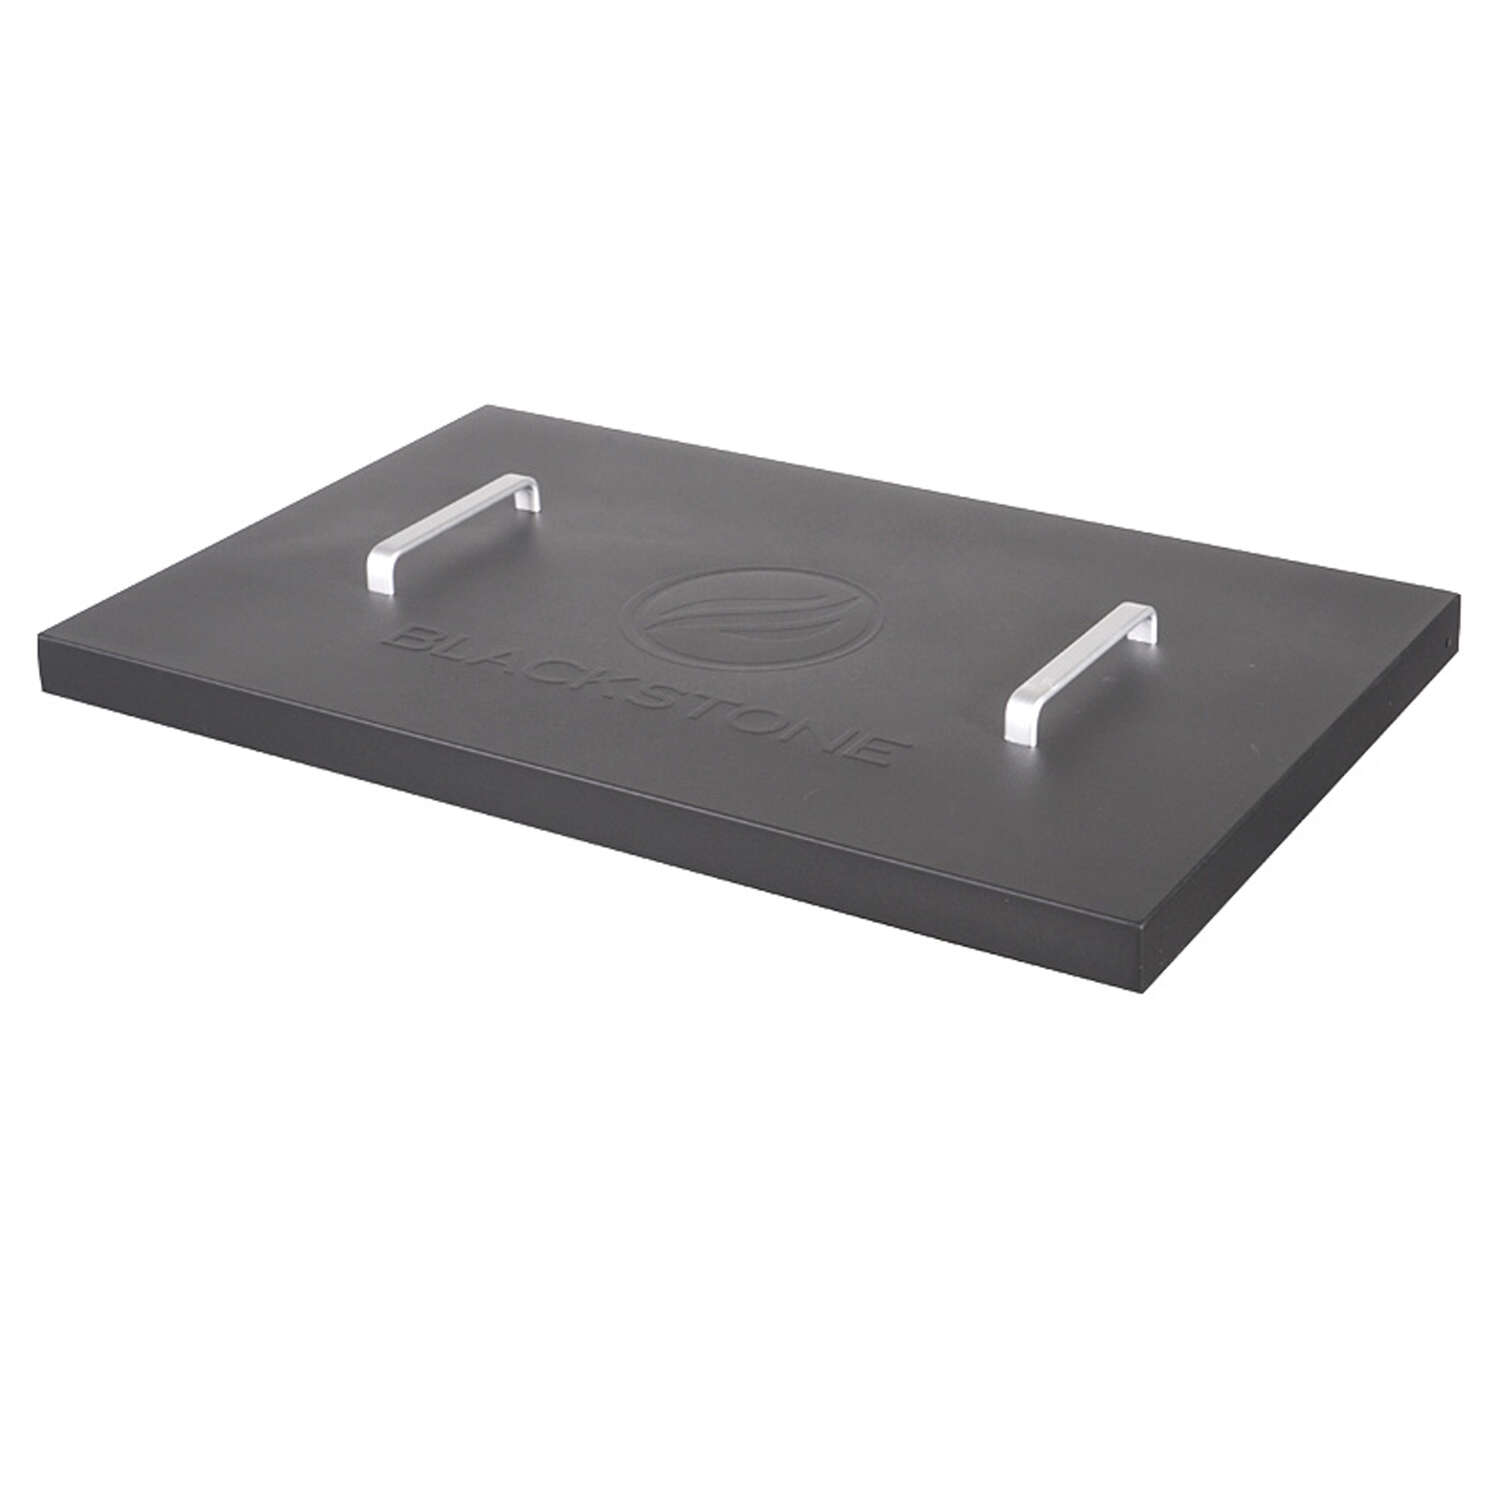 Blackstone Grill Top Griddle Lid 28 in. L x 22 in. W